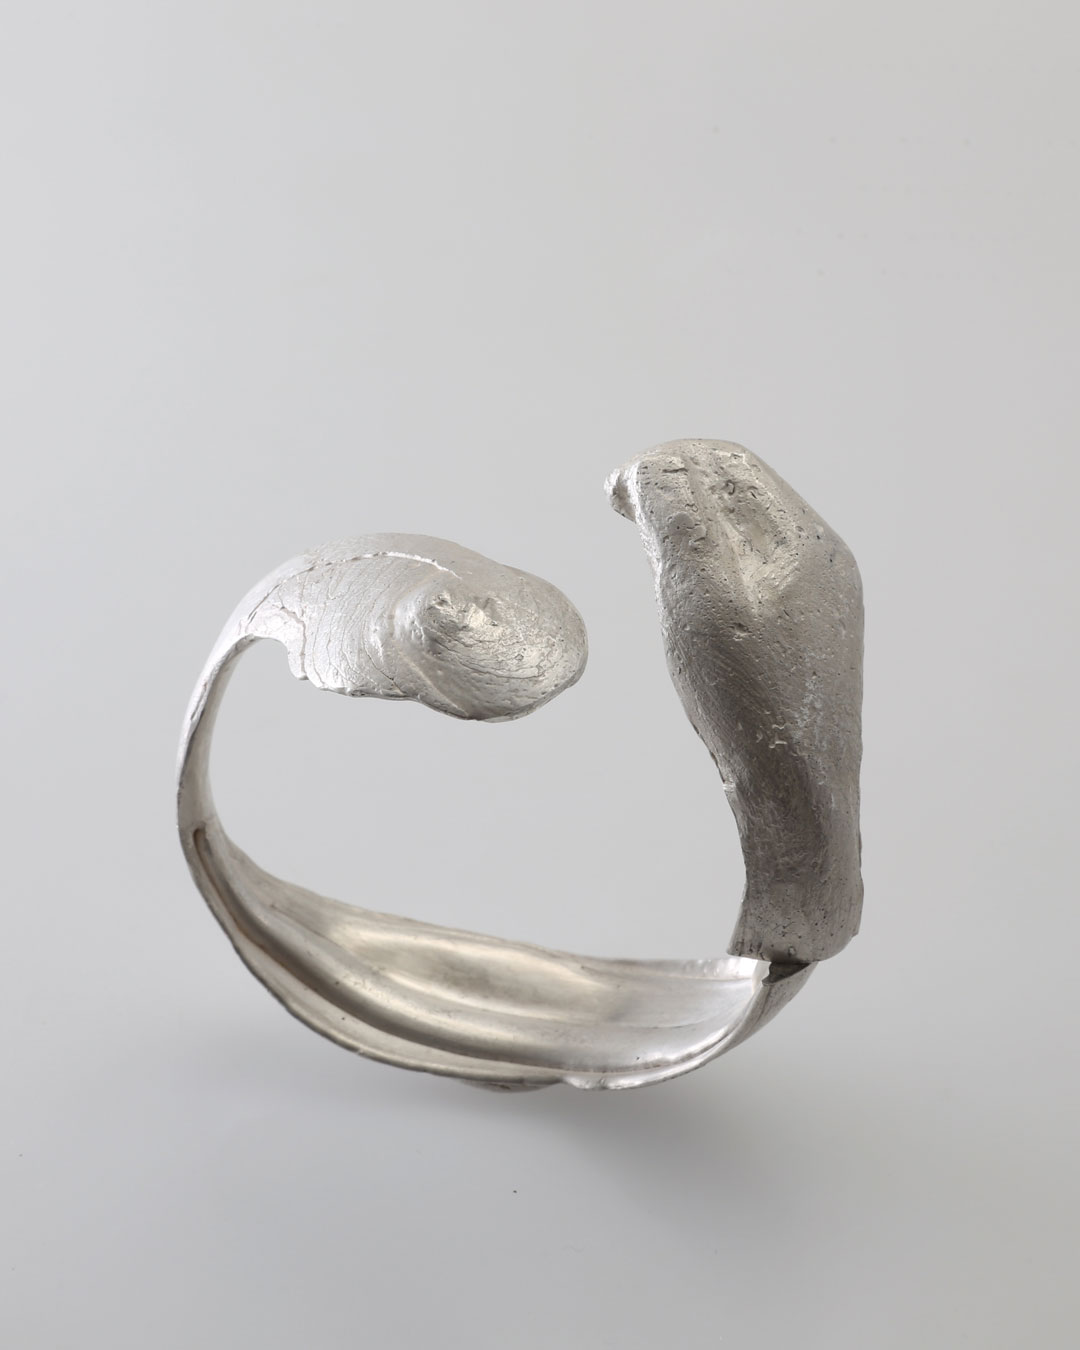 Juliane Brandes, untitled, 2016, bracelet; silver, 60 x 70 x 30 mm, €2430